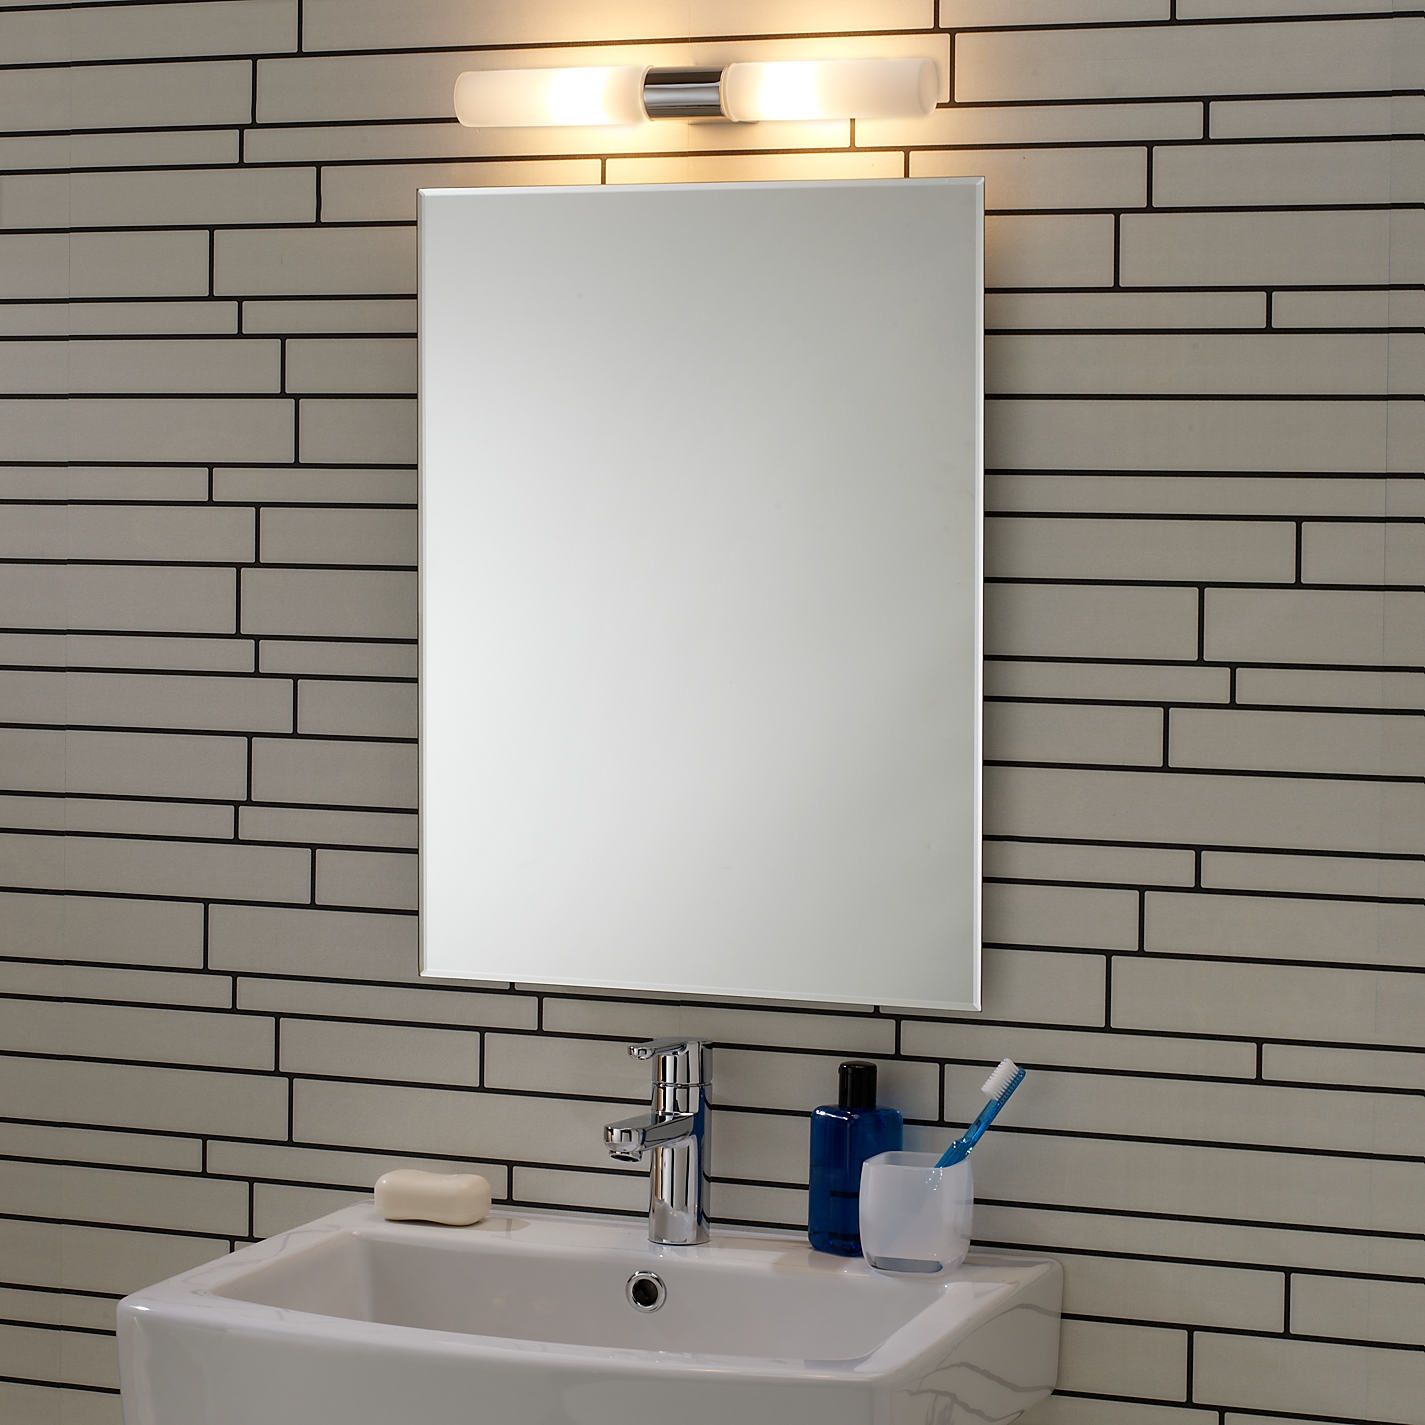 Permalink to Bathroom Lights Over Mirror